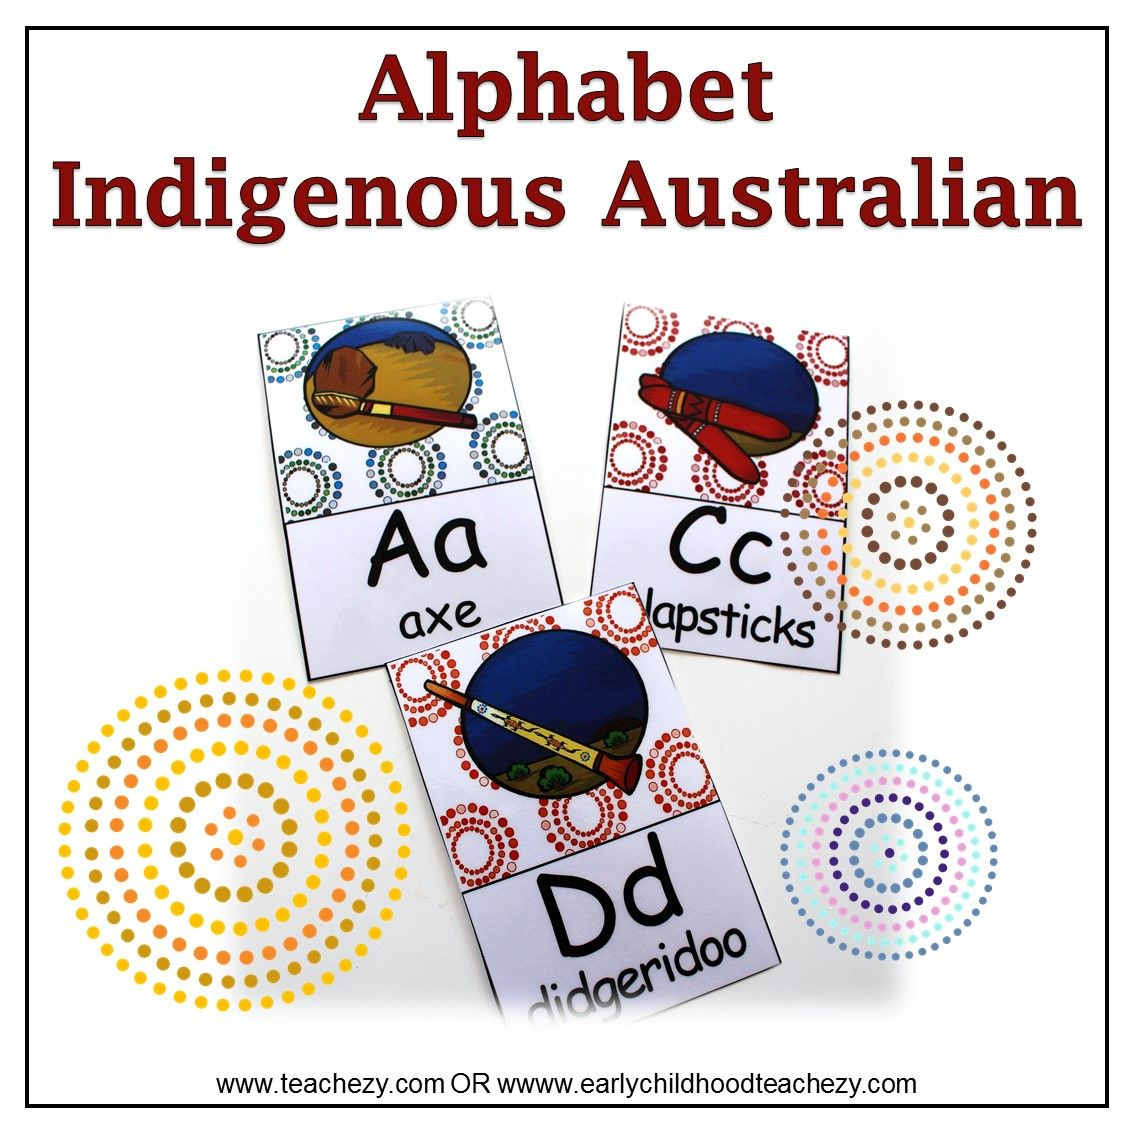 Alphabets With Images